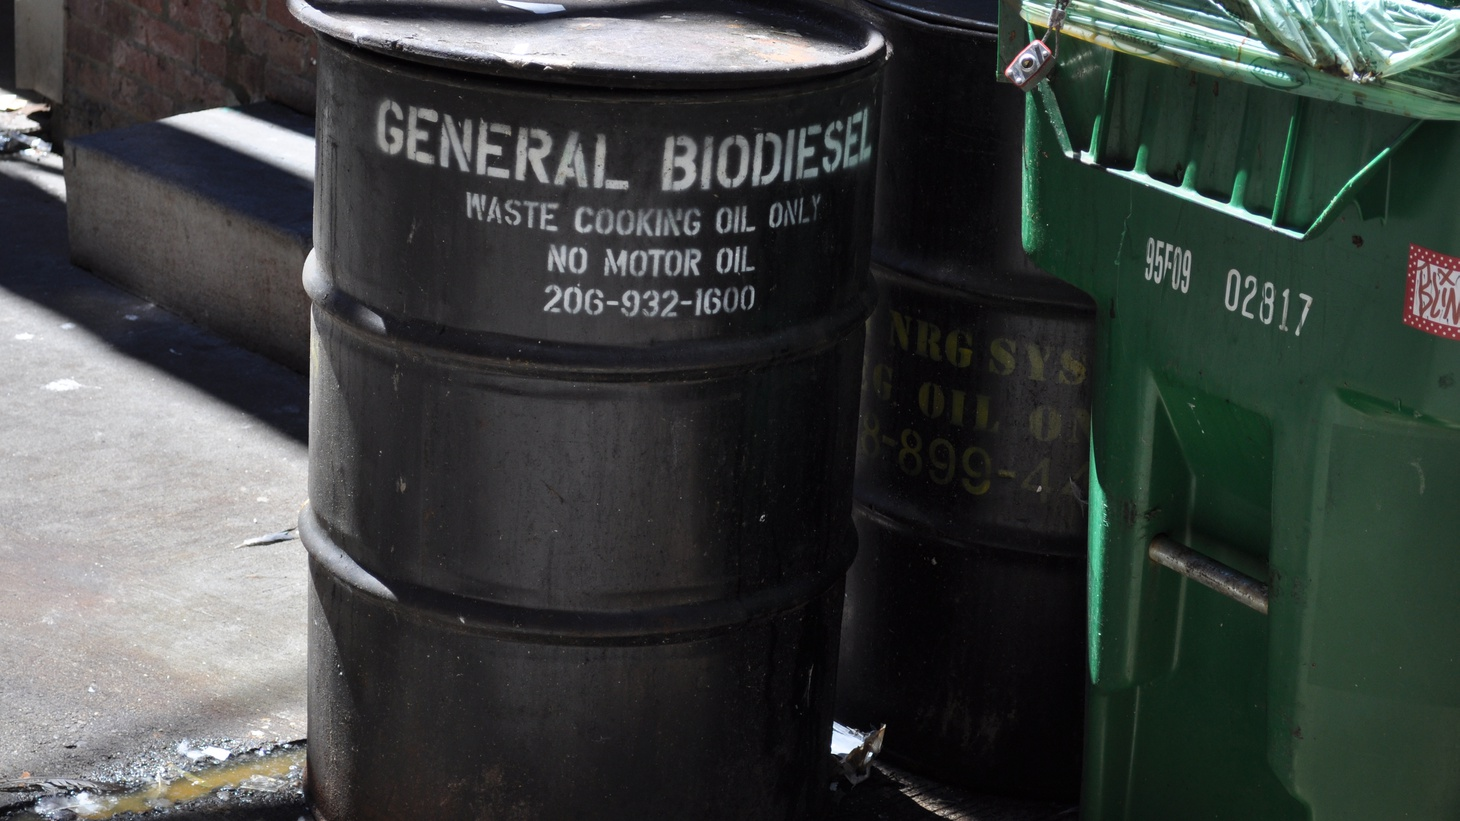 Since people have started taking greasy stuff out of the fryer and putting it in their biodiesel cars, the value of all that used oil has gone up, and stealing it has become a lucrative crime. The story of modern day cooking-oil rustling.